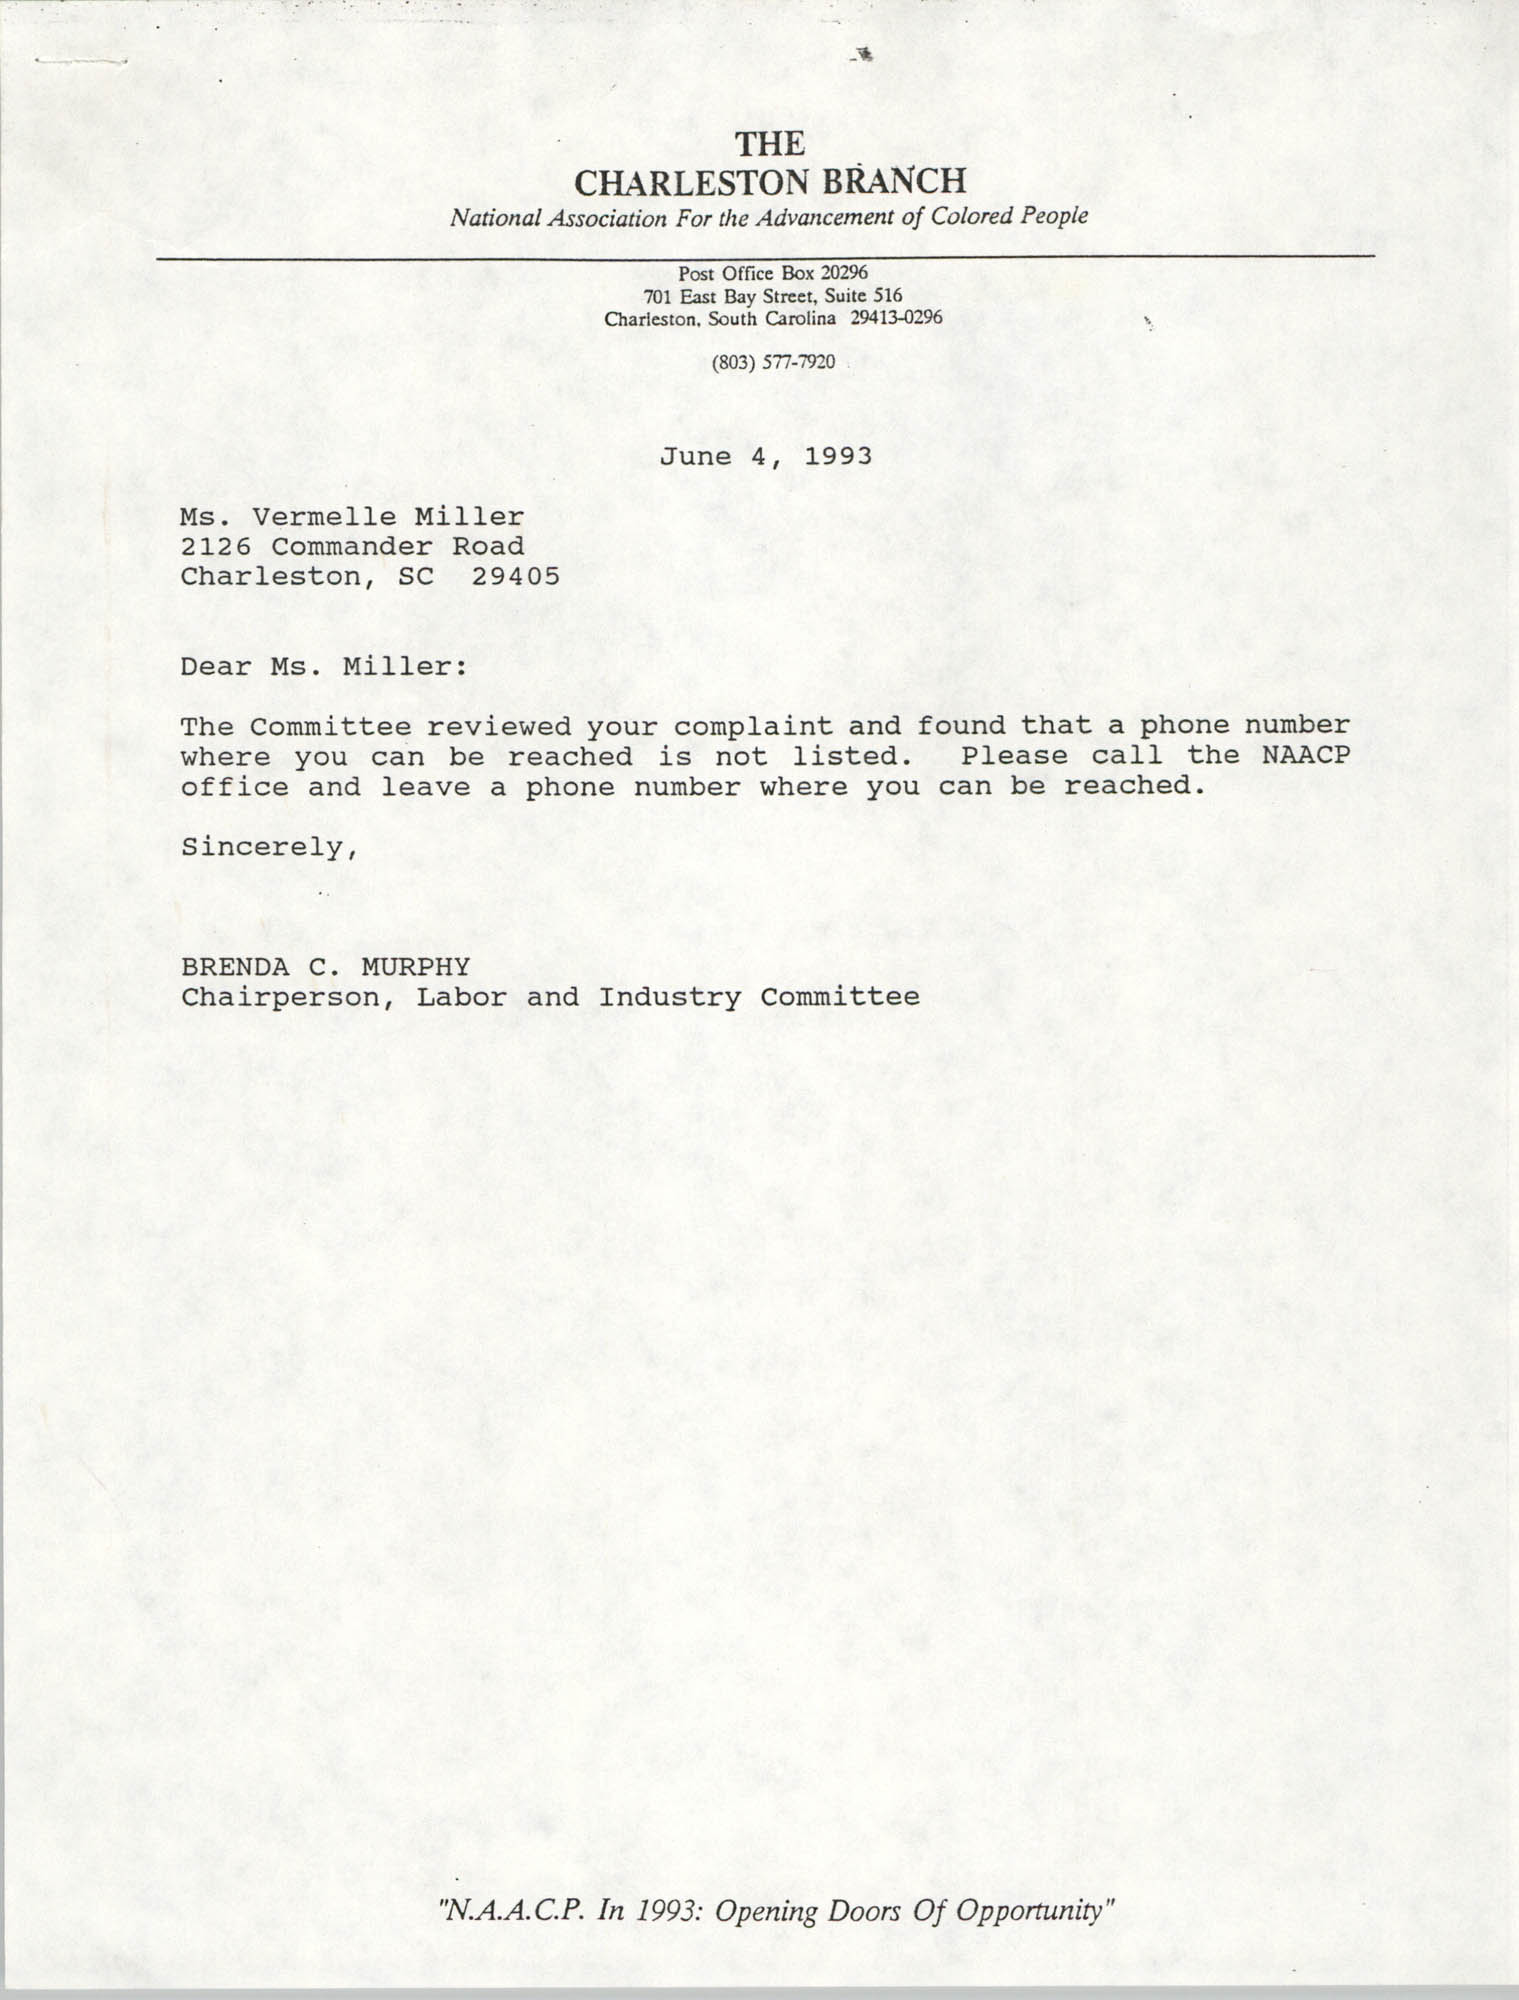 Letter from Brenda C. Murphy to Vermelle Miller, June 4, 1993